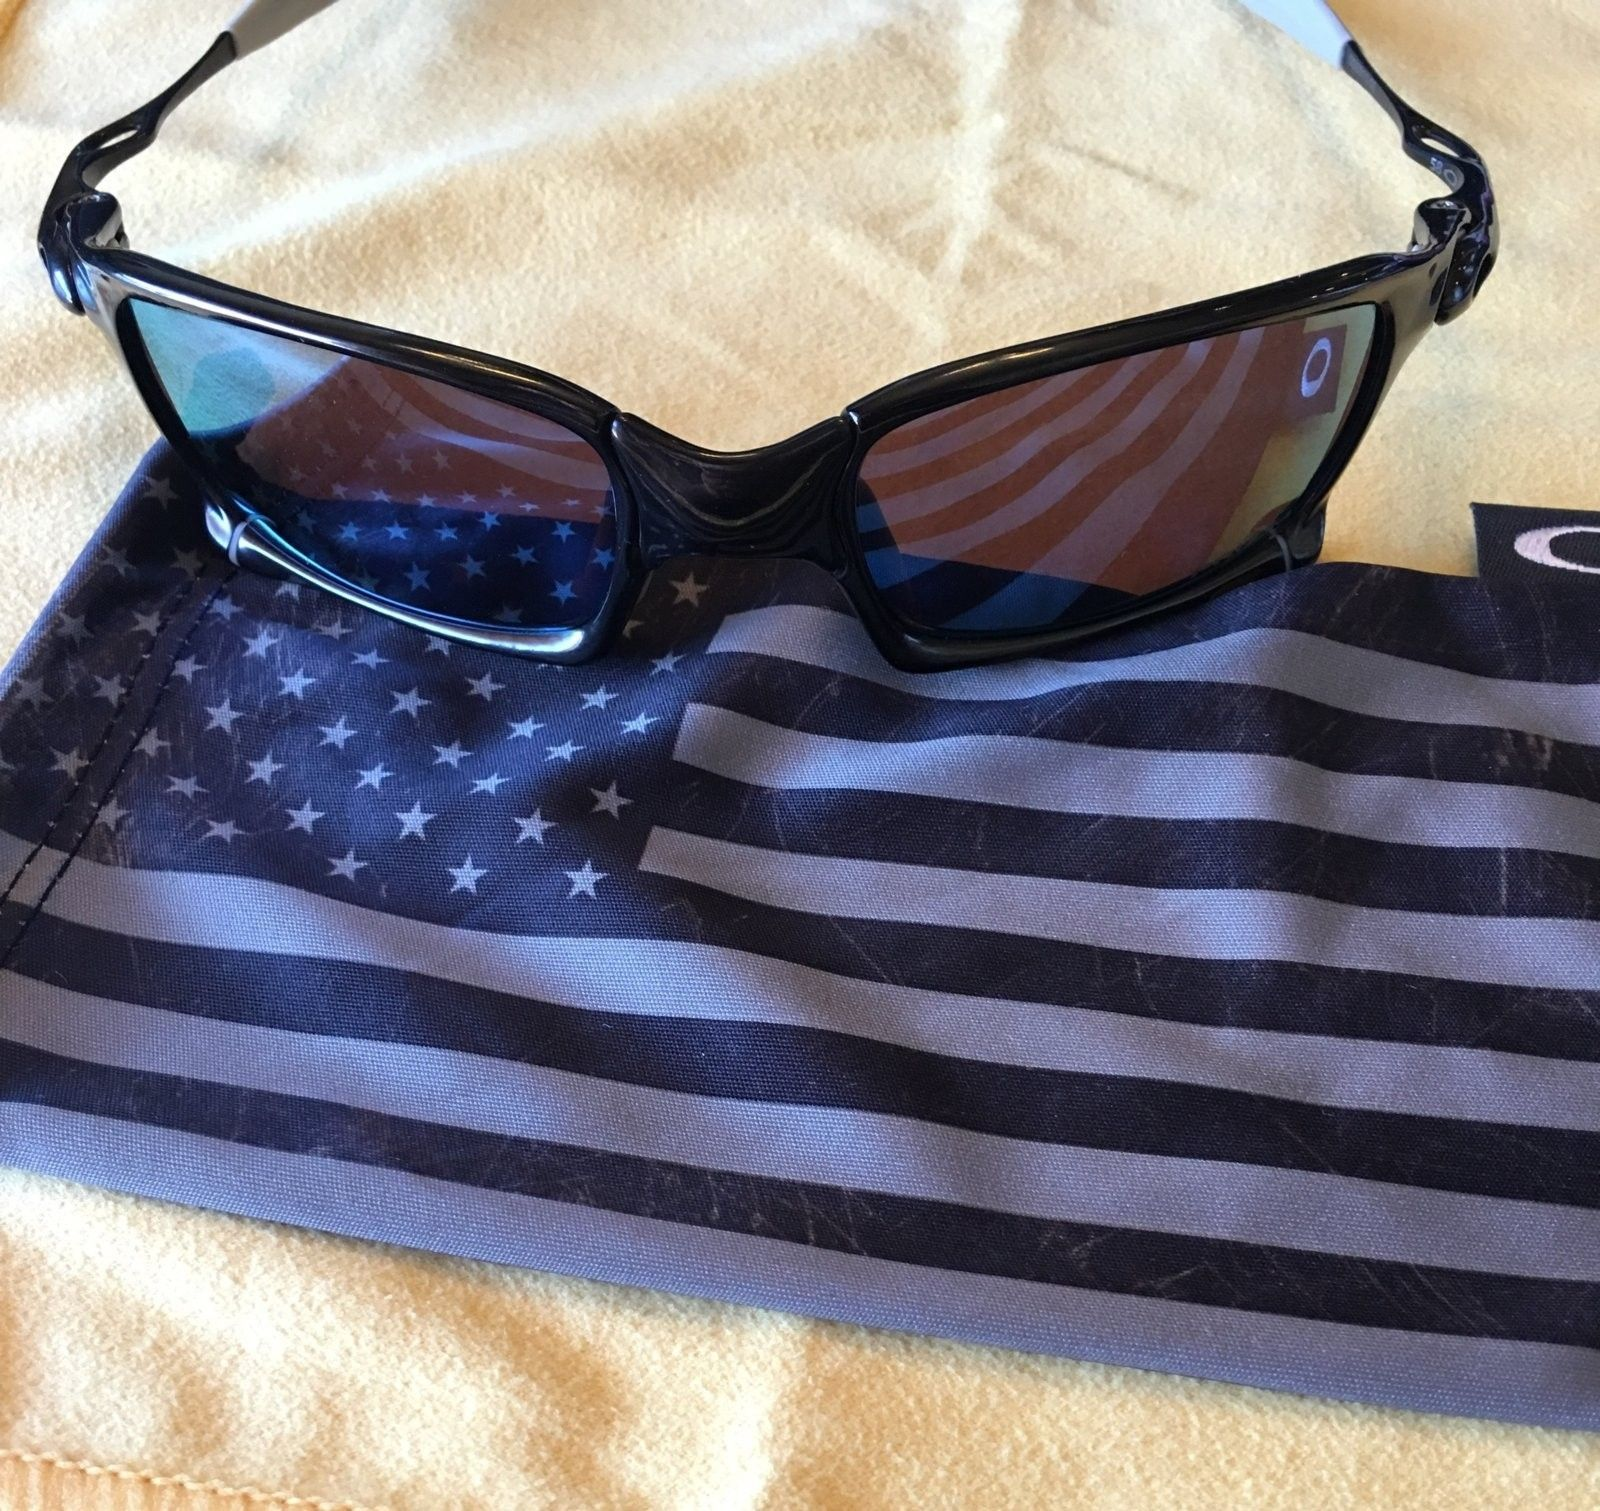 Let's see your Independence Day tribute! Happy 4th of July! - image.jpeg